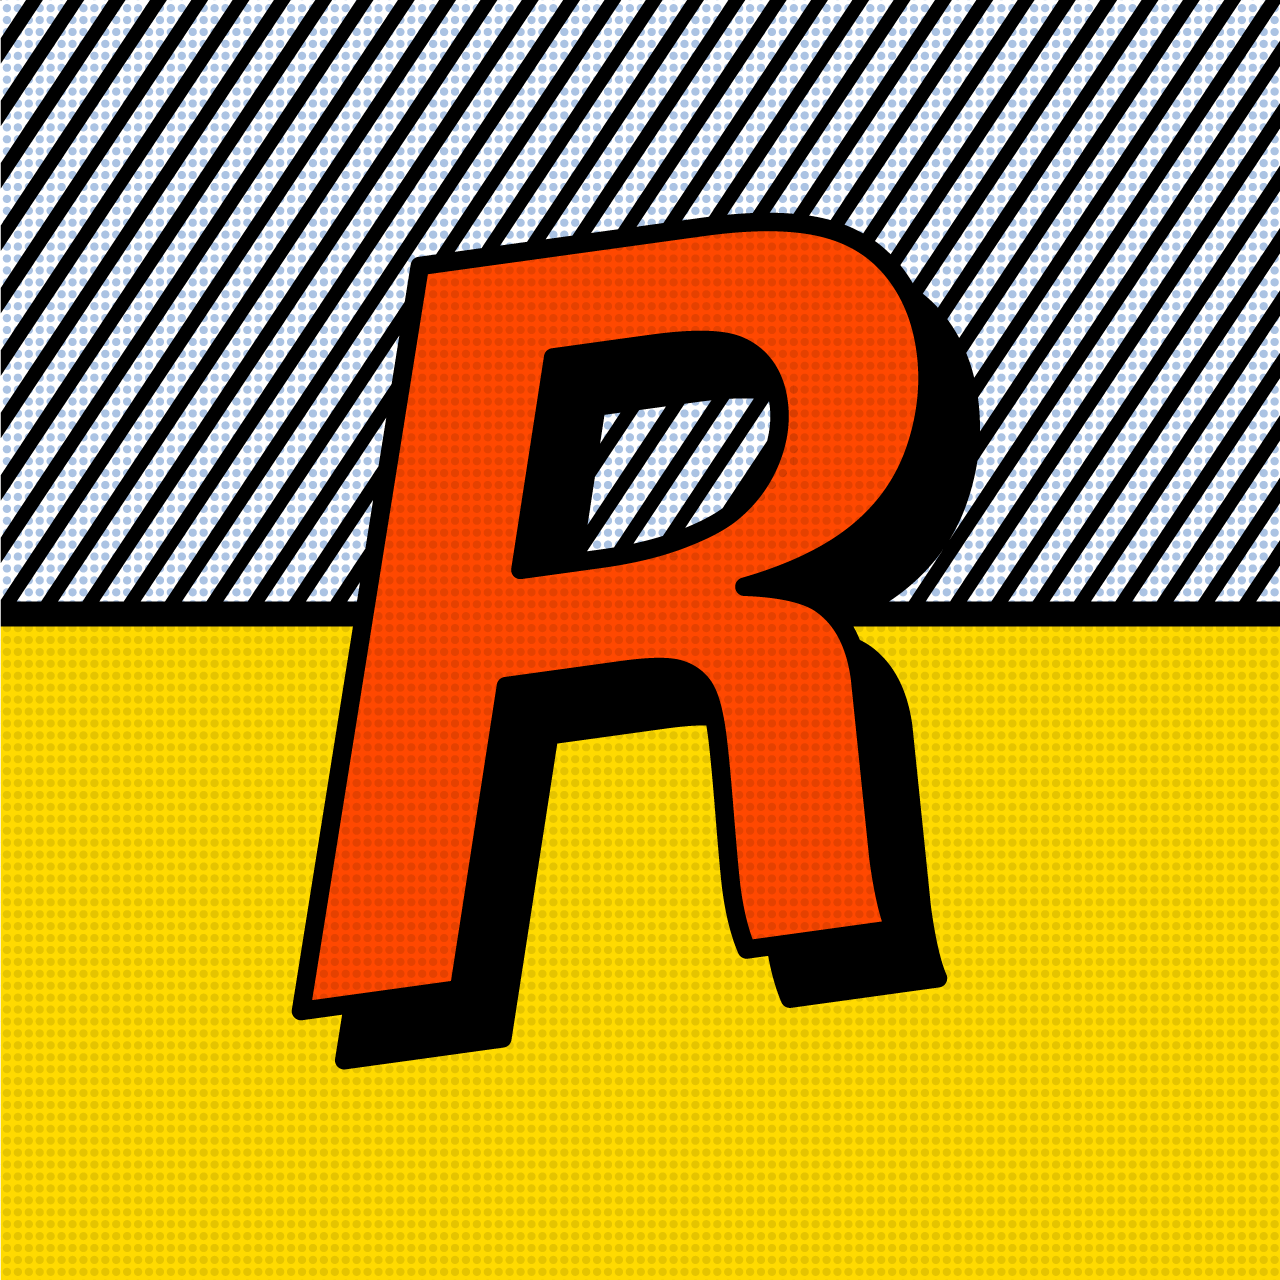 My R submission for 36 Days of Type